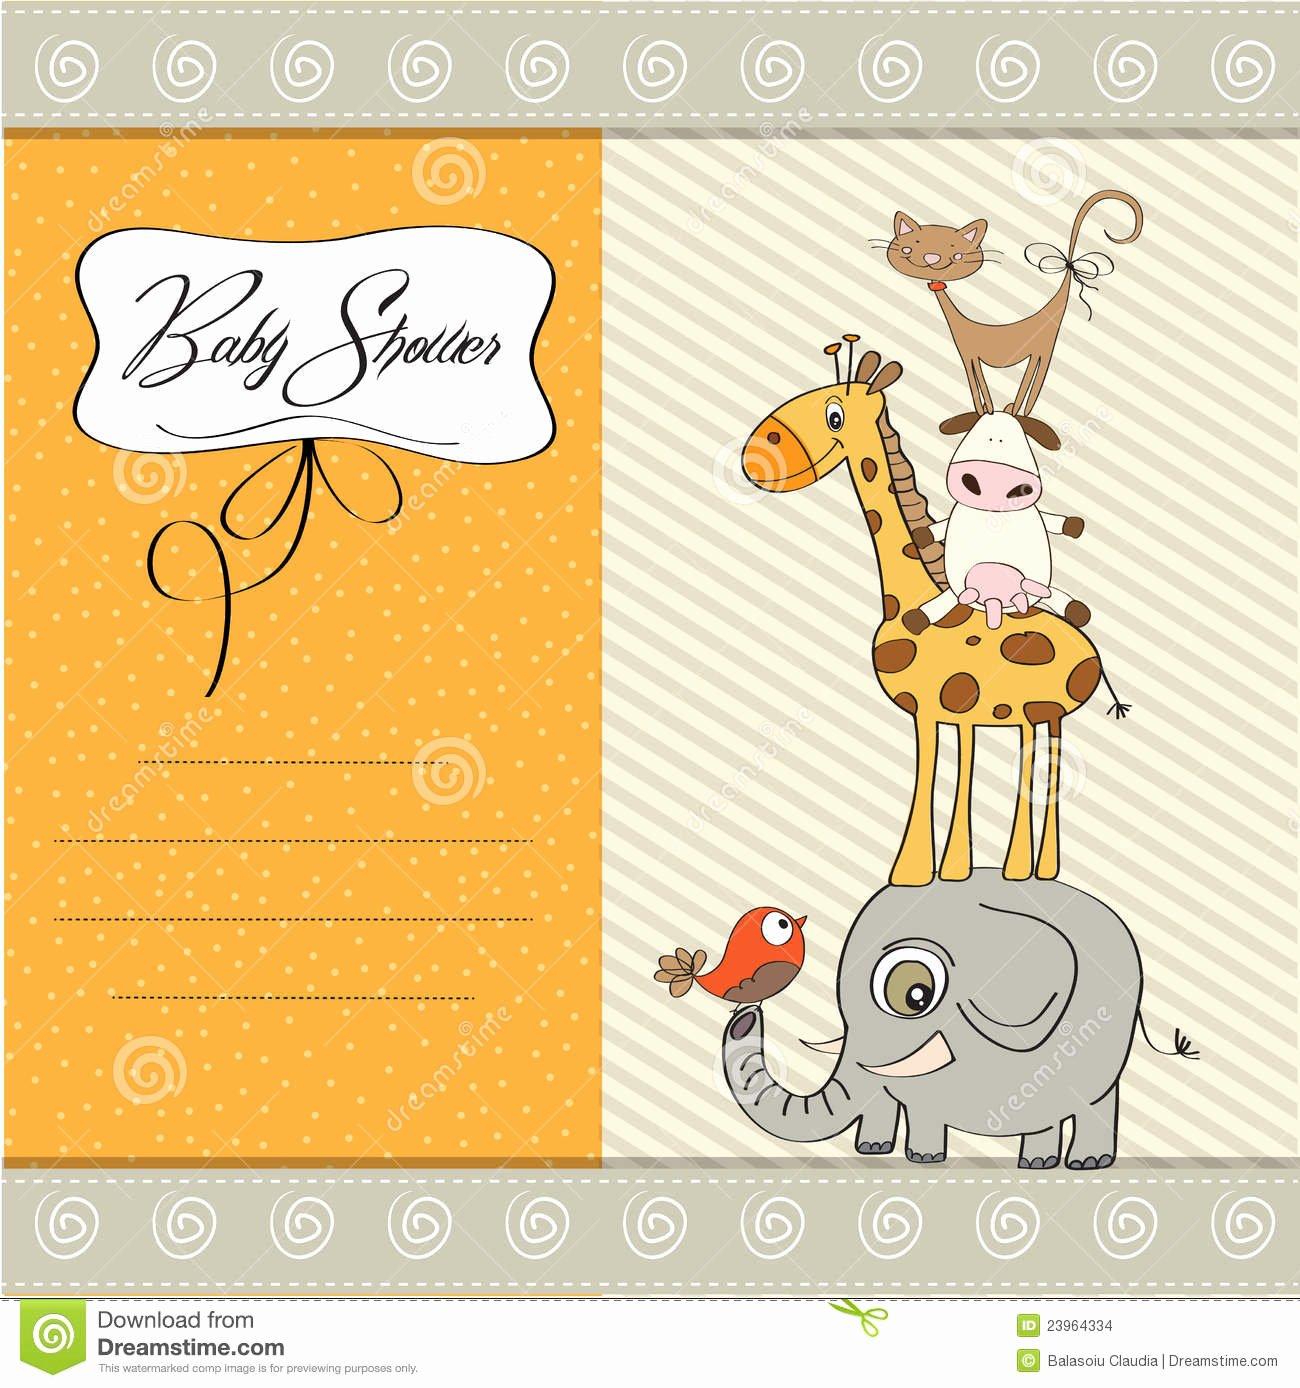 Baby Shower Card Template Unique Baby Shower Template Card Stock Image